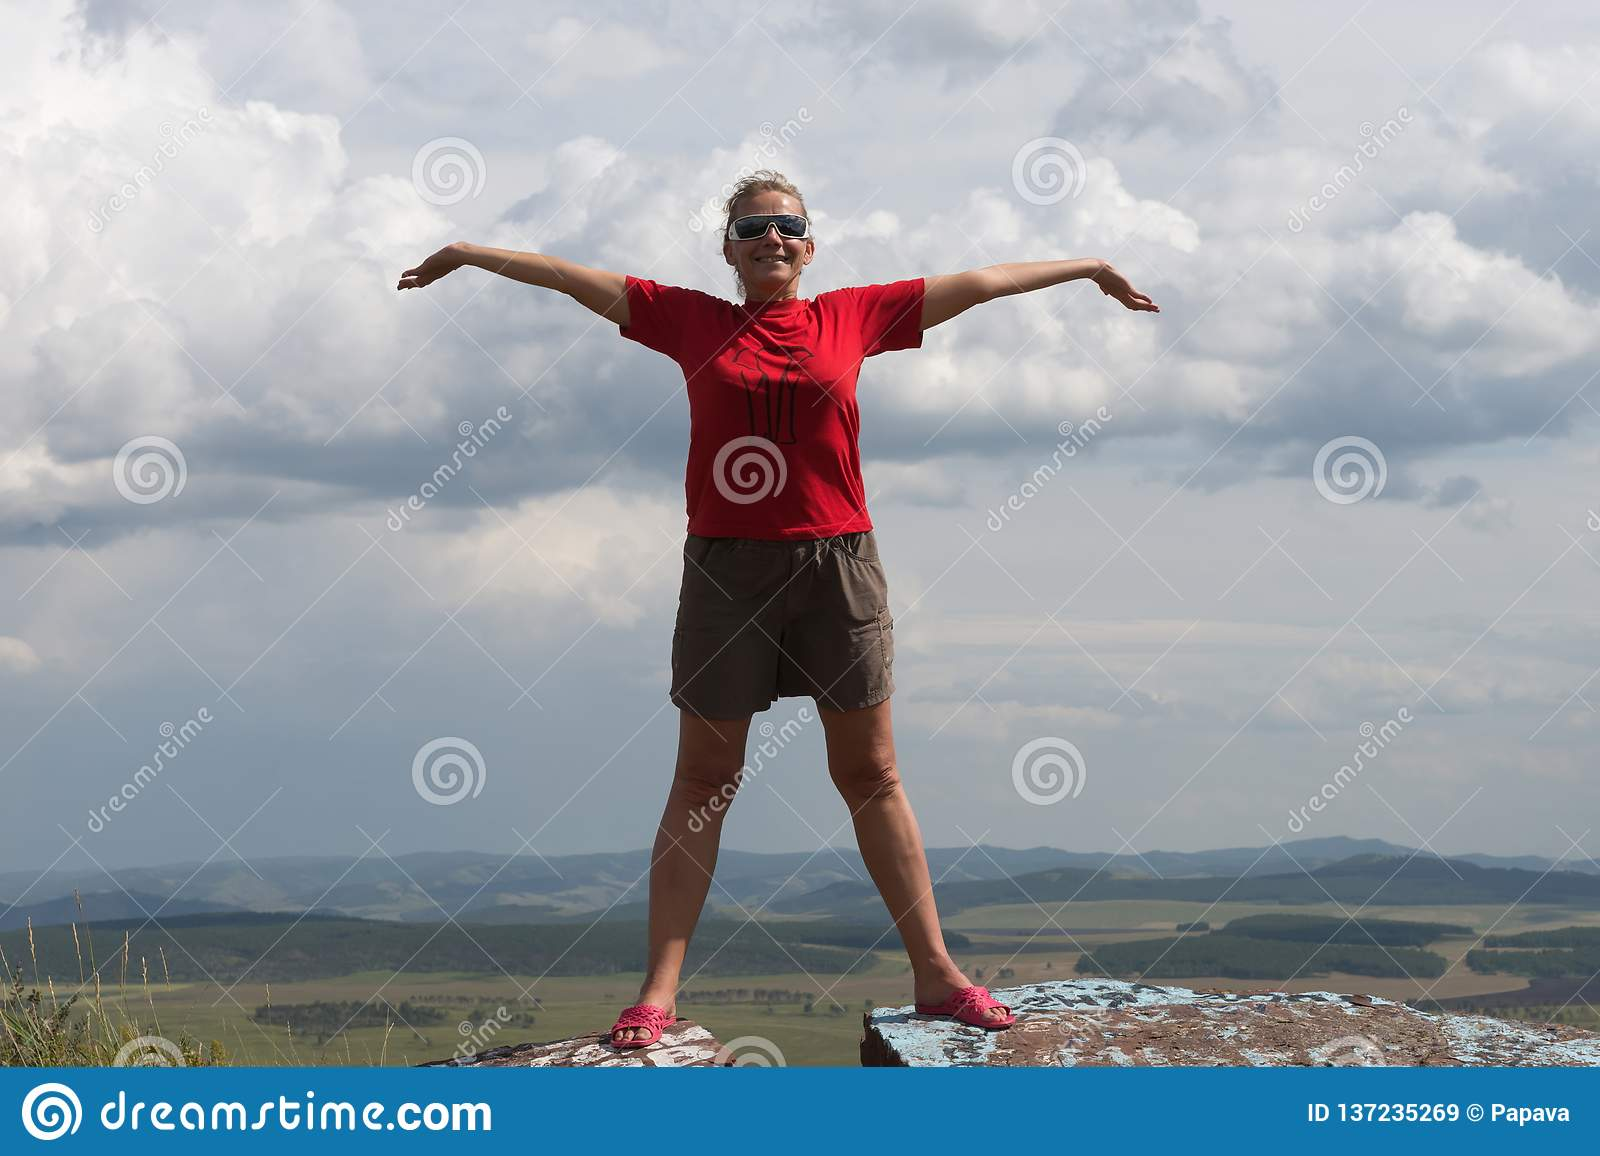 An adult woman stands, arms outstretched, on a high mountain, against the backdrop of a plain and a cloudy sky.